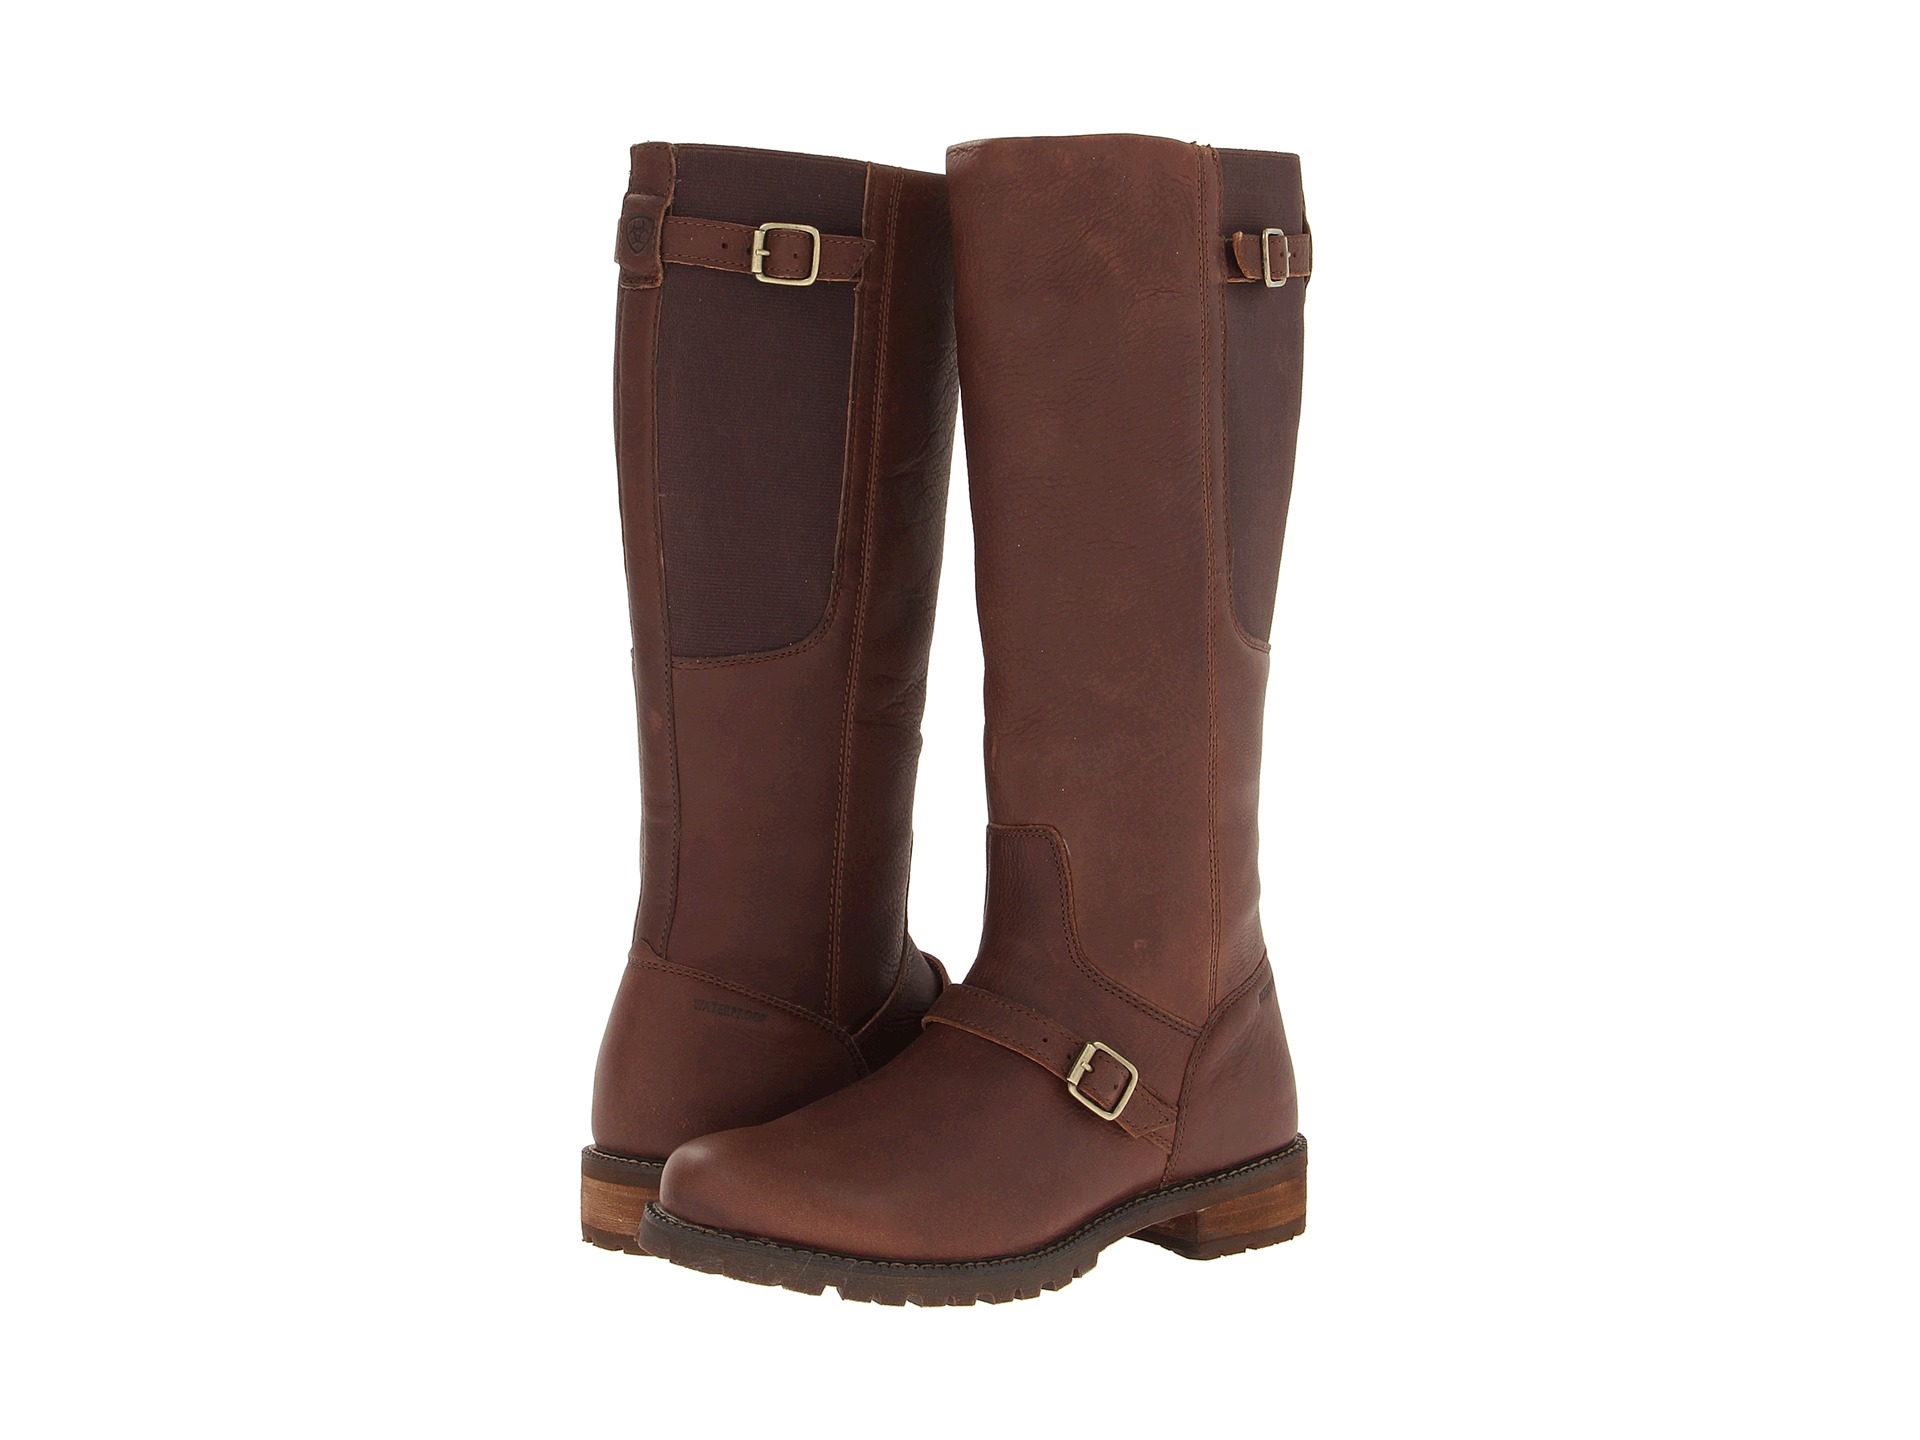 Ariat Stanton H20 - Zappos.com Free Shipping BOTH Ways